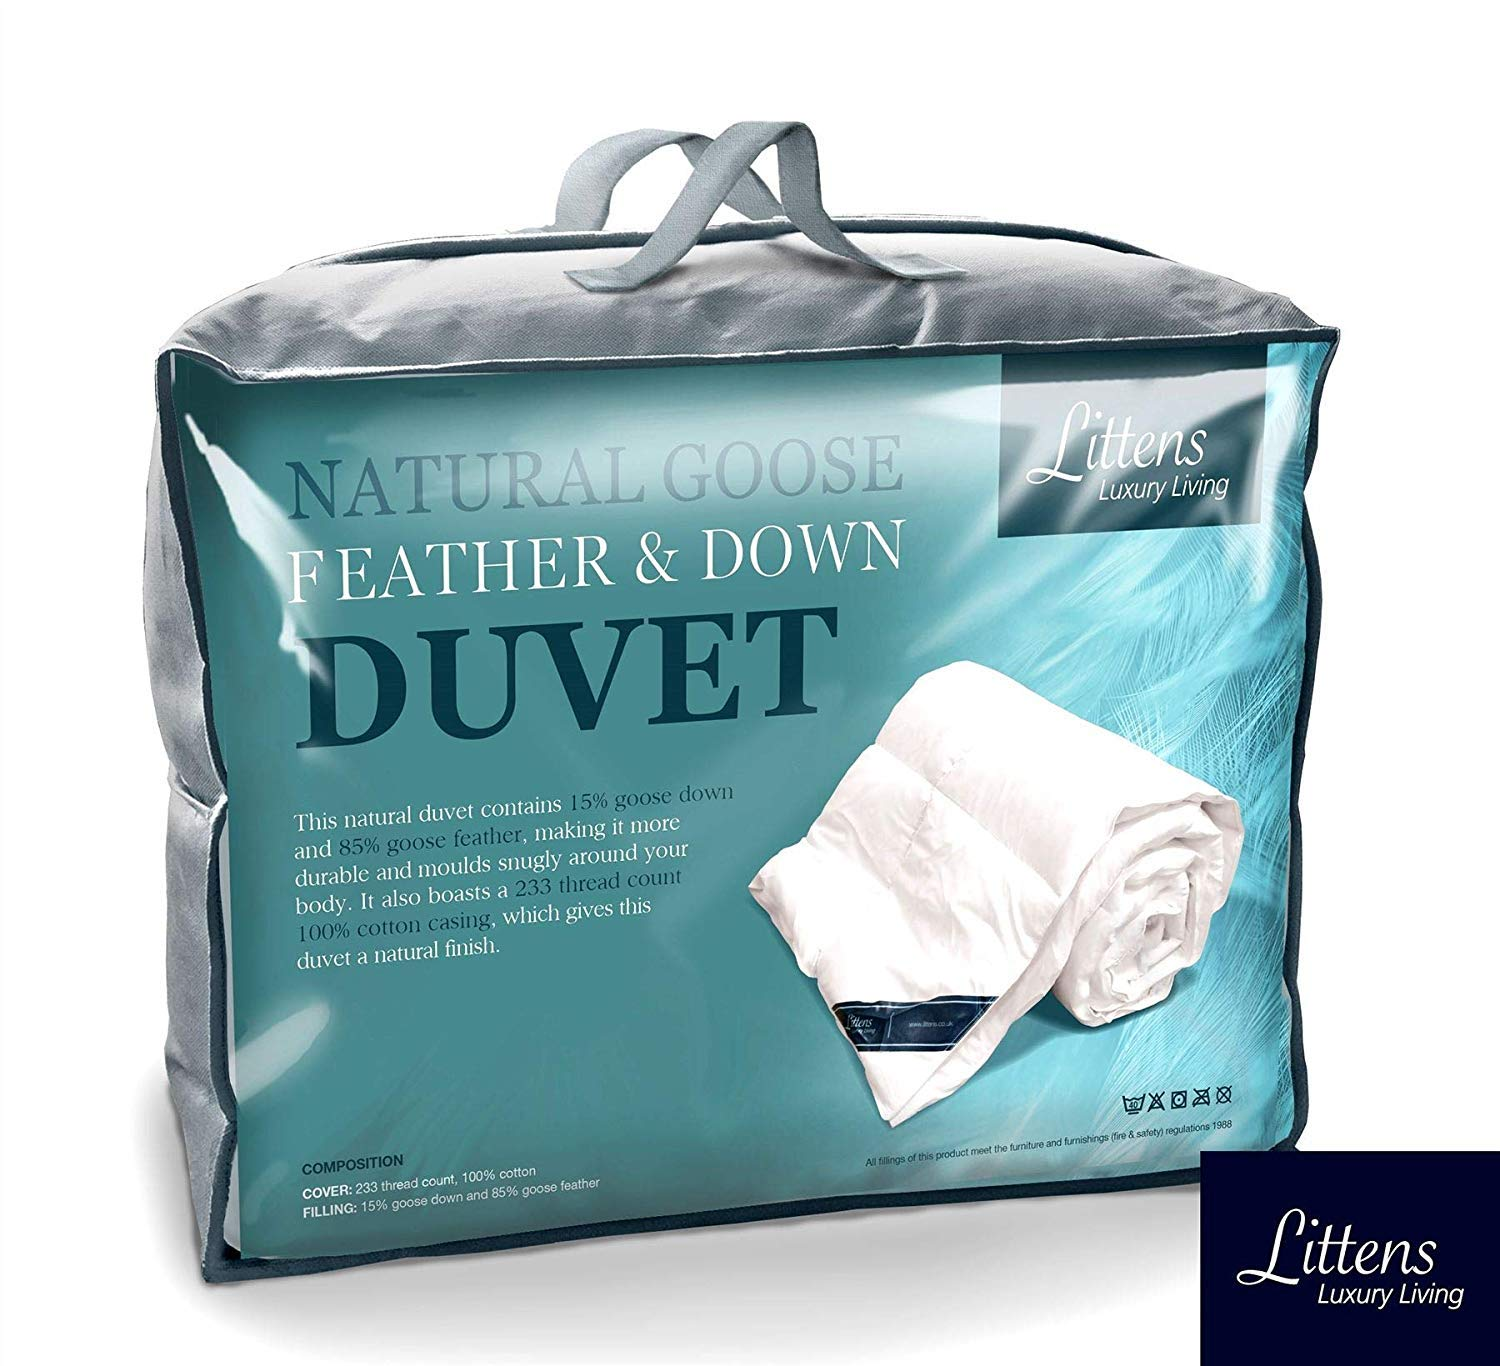 b32efc155db1 Littens - Luxury White Goose Feather   Down Duvet Quilt - 13.5 Tog King  Size - 100% Cotton Anti Dust Mite   Down Proof Fabric  Amazon.co.uk   Kitchen   Home